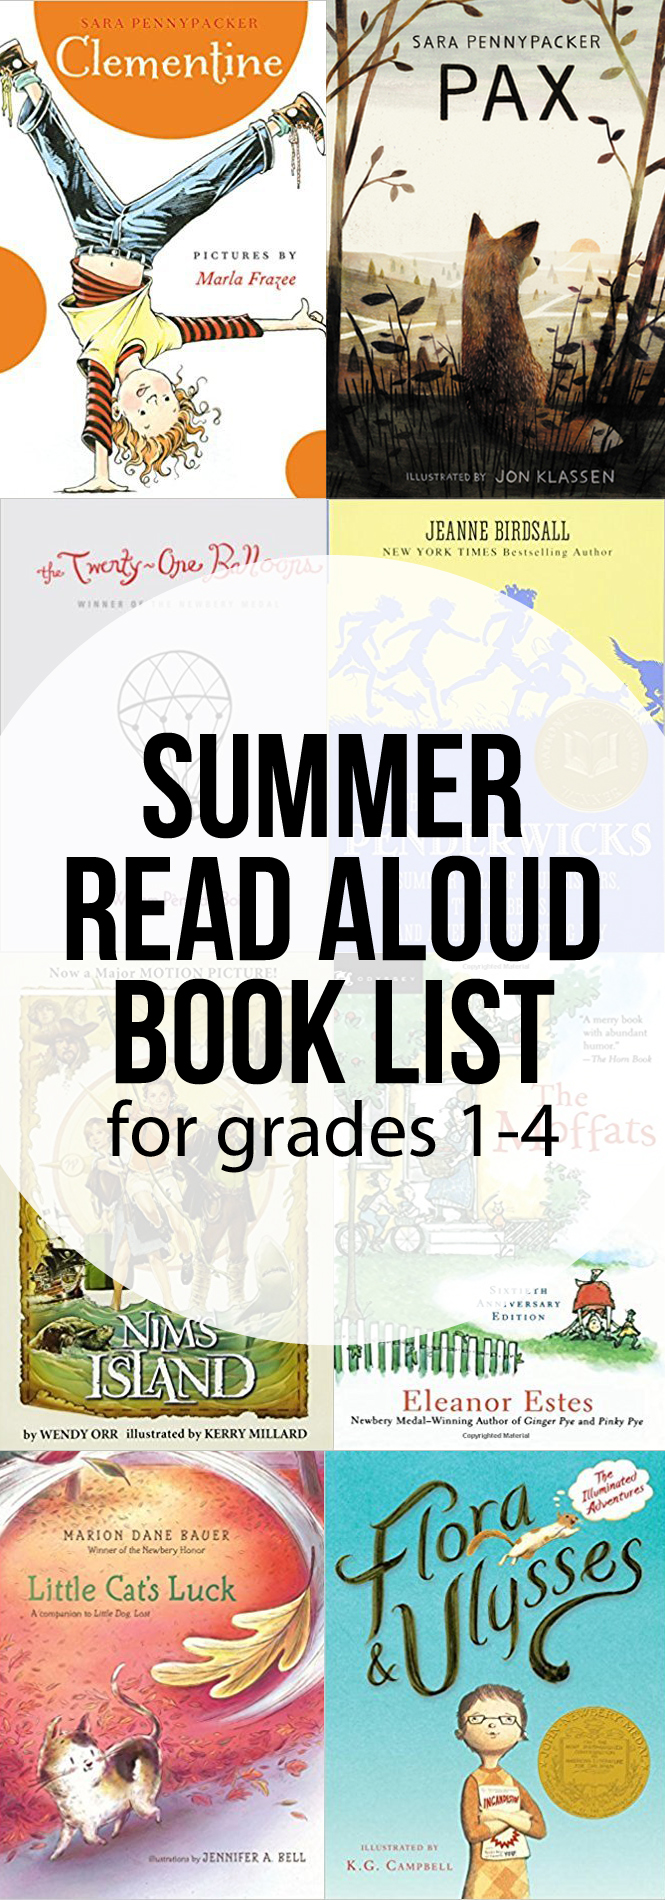 Elementary Summer Novel Read Aloud List